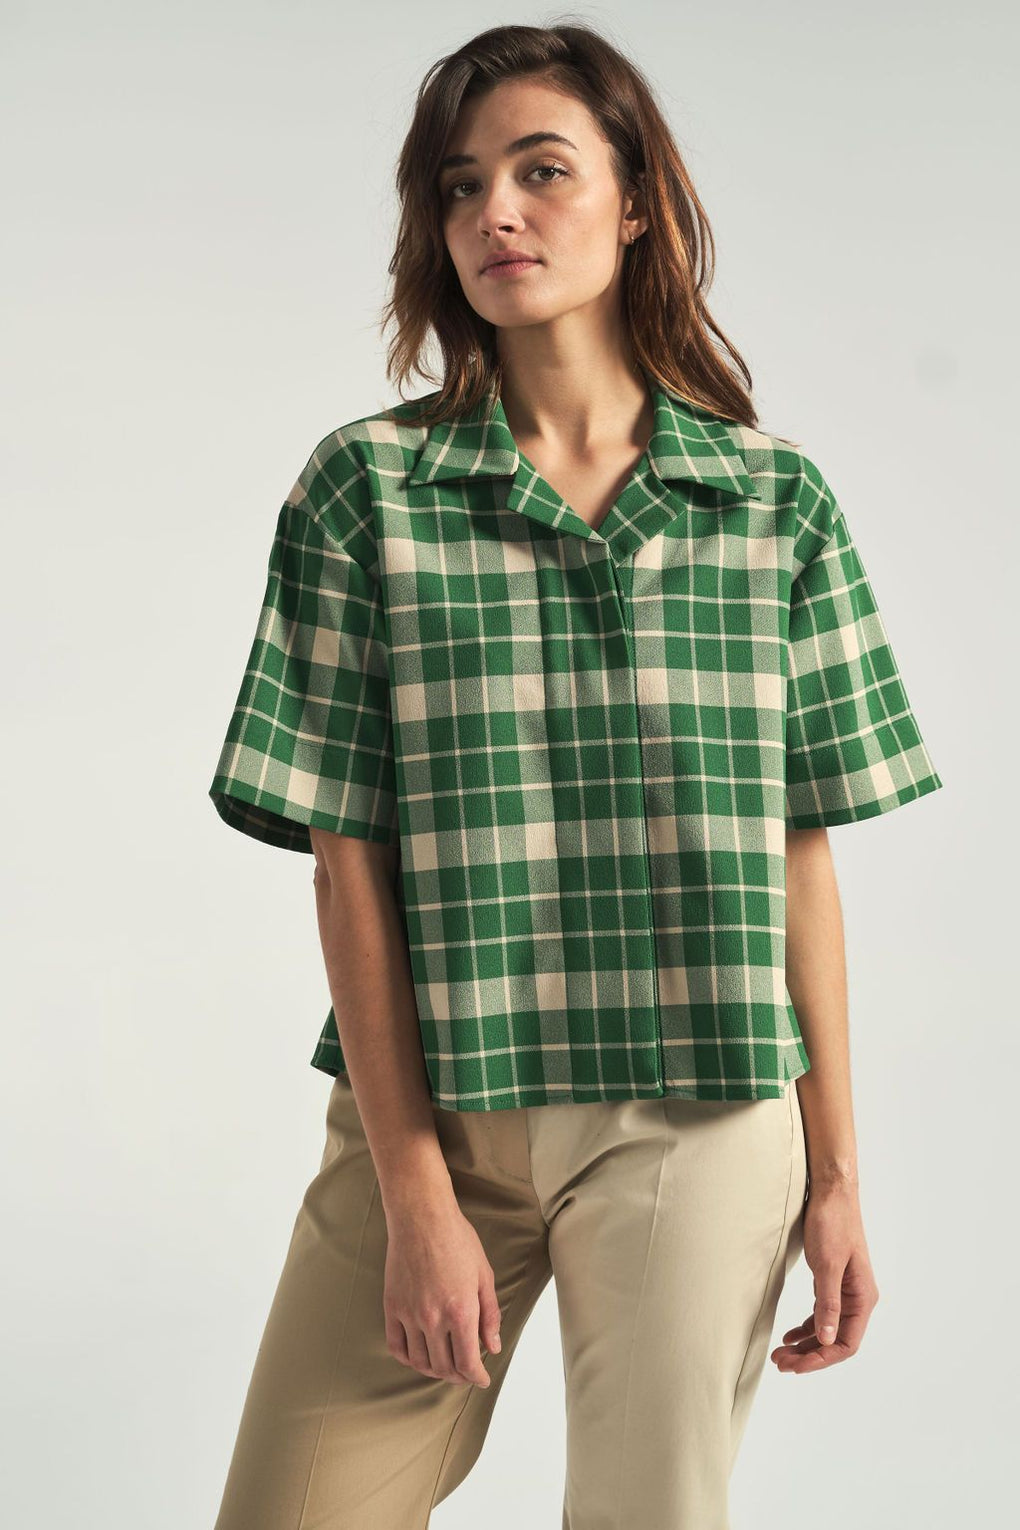 Green check shirt-mm6 by maison margiela-idun-st. paul-spring shirt